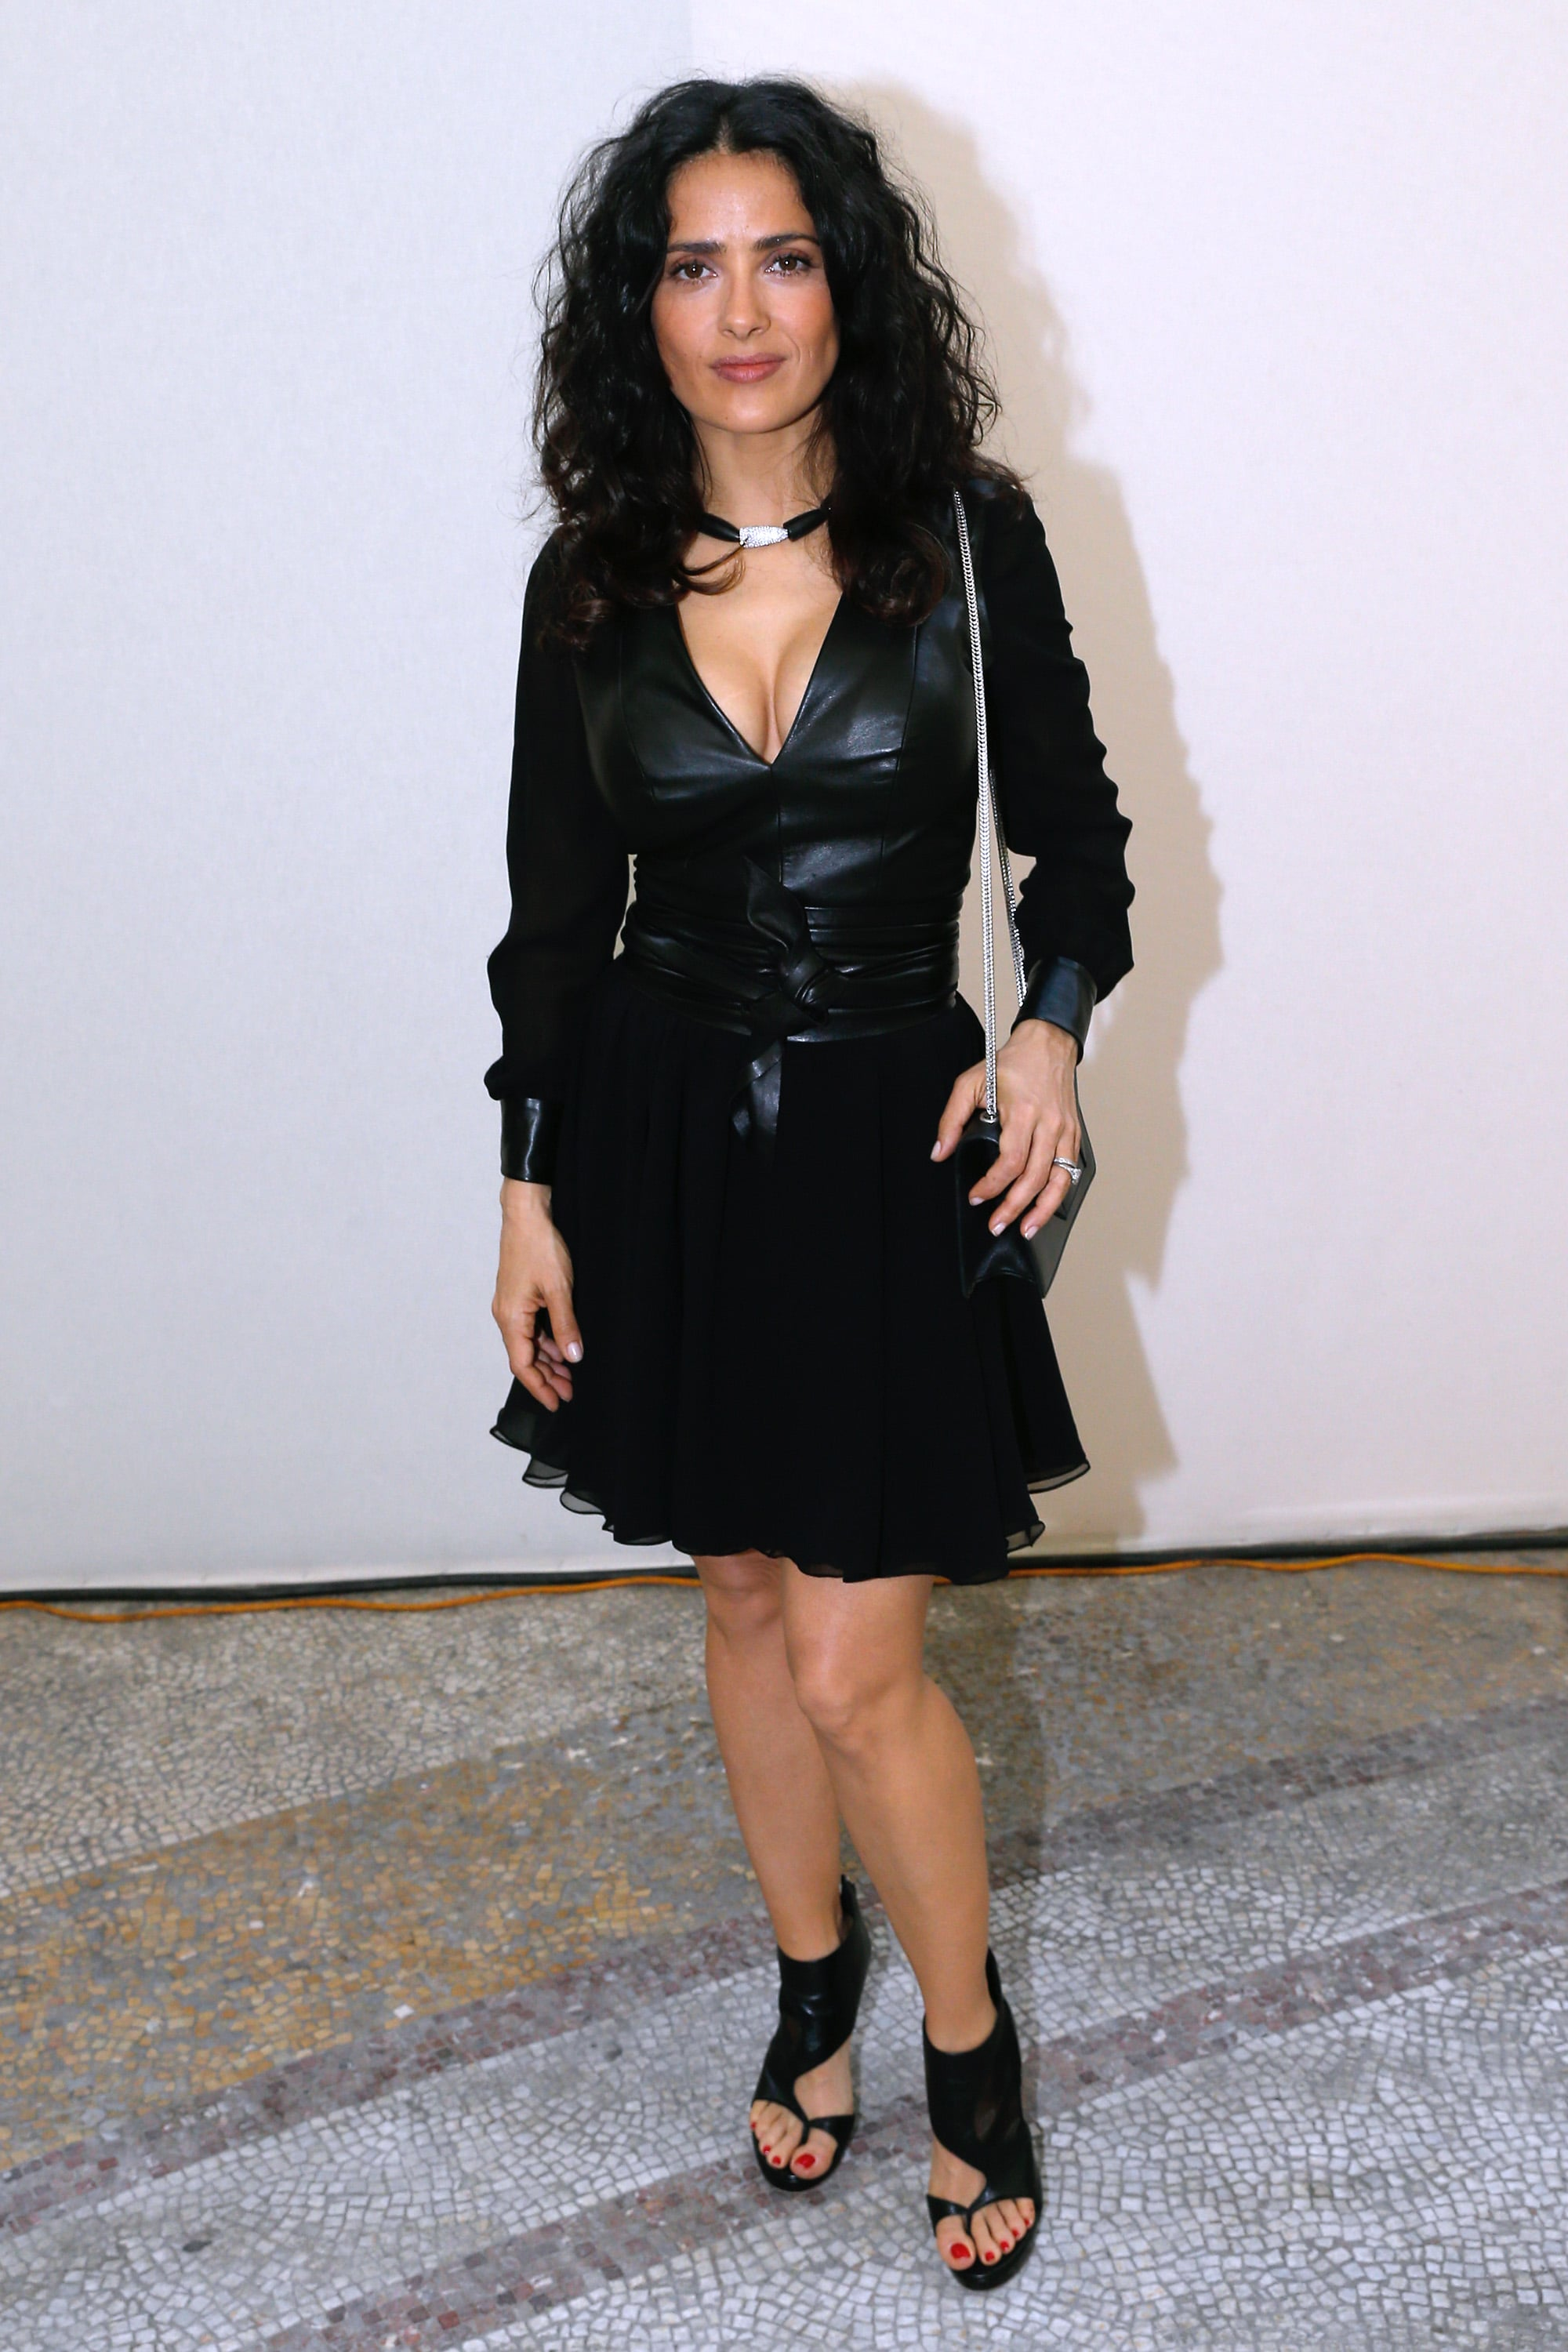 Salma Hayek at 47 (Now 48)